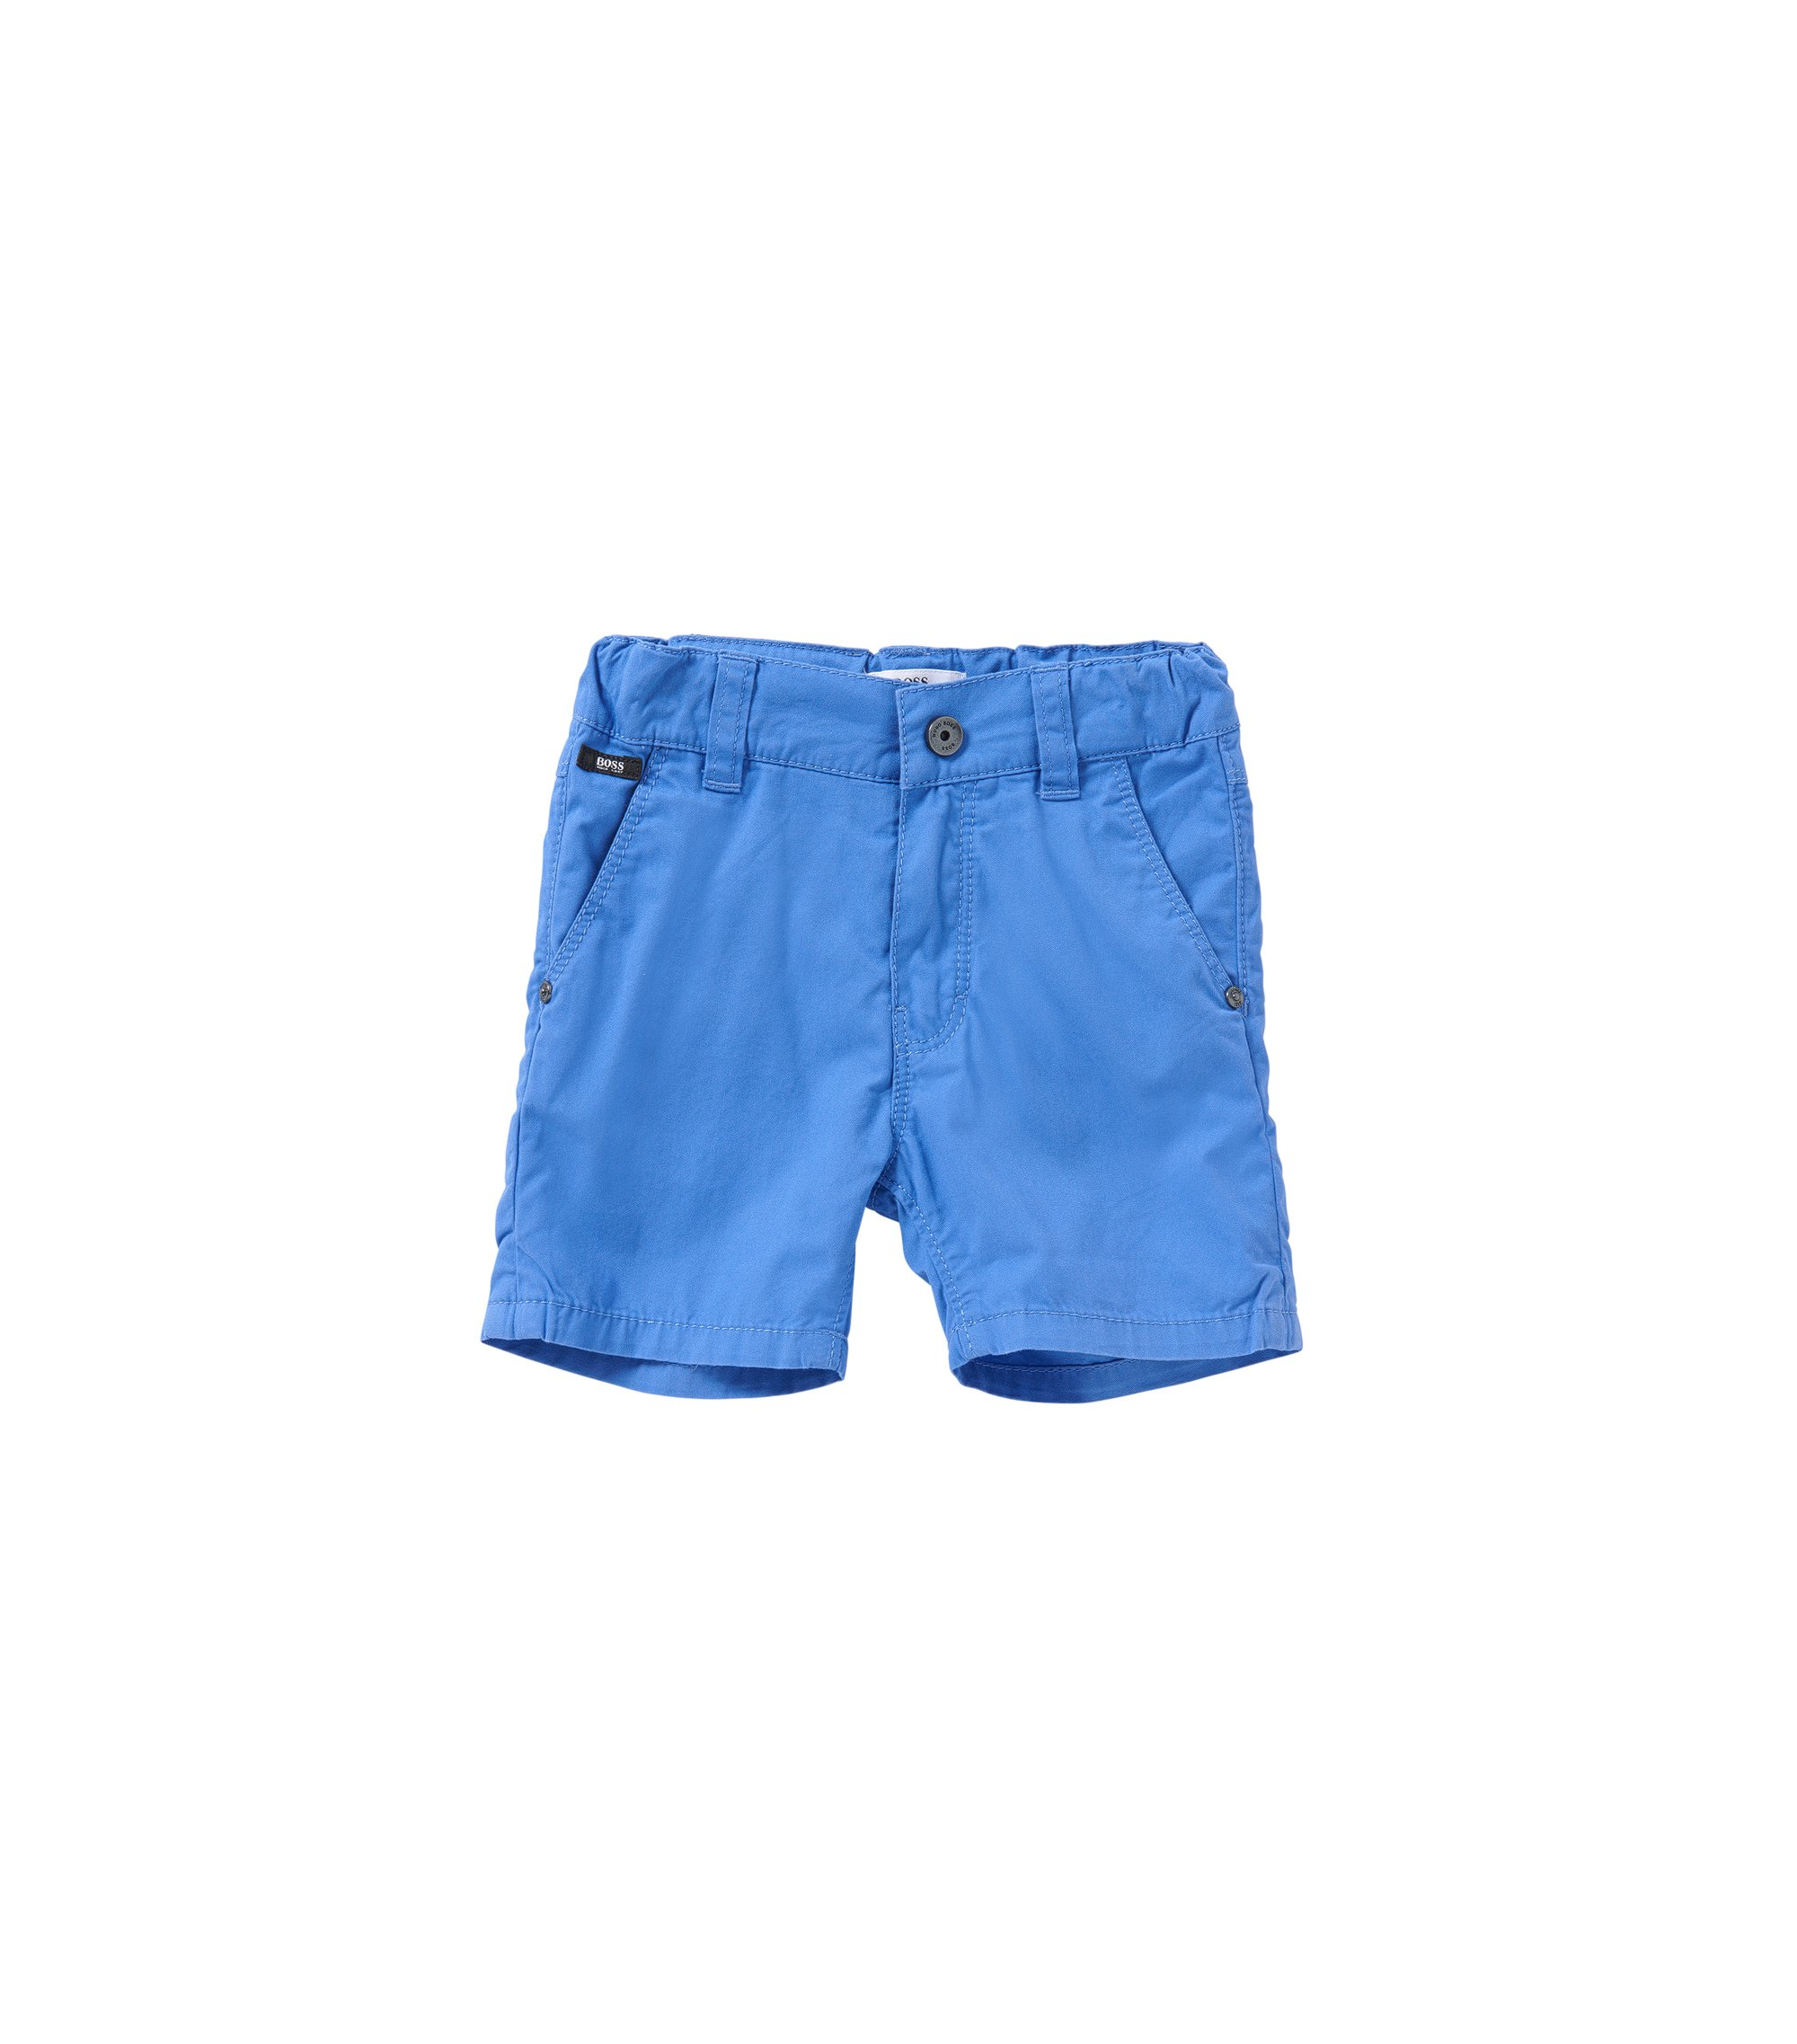 Regular-Fit Baby-Shorts aus Baumwolle: 'J04218', Blau